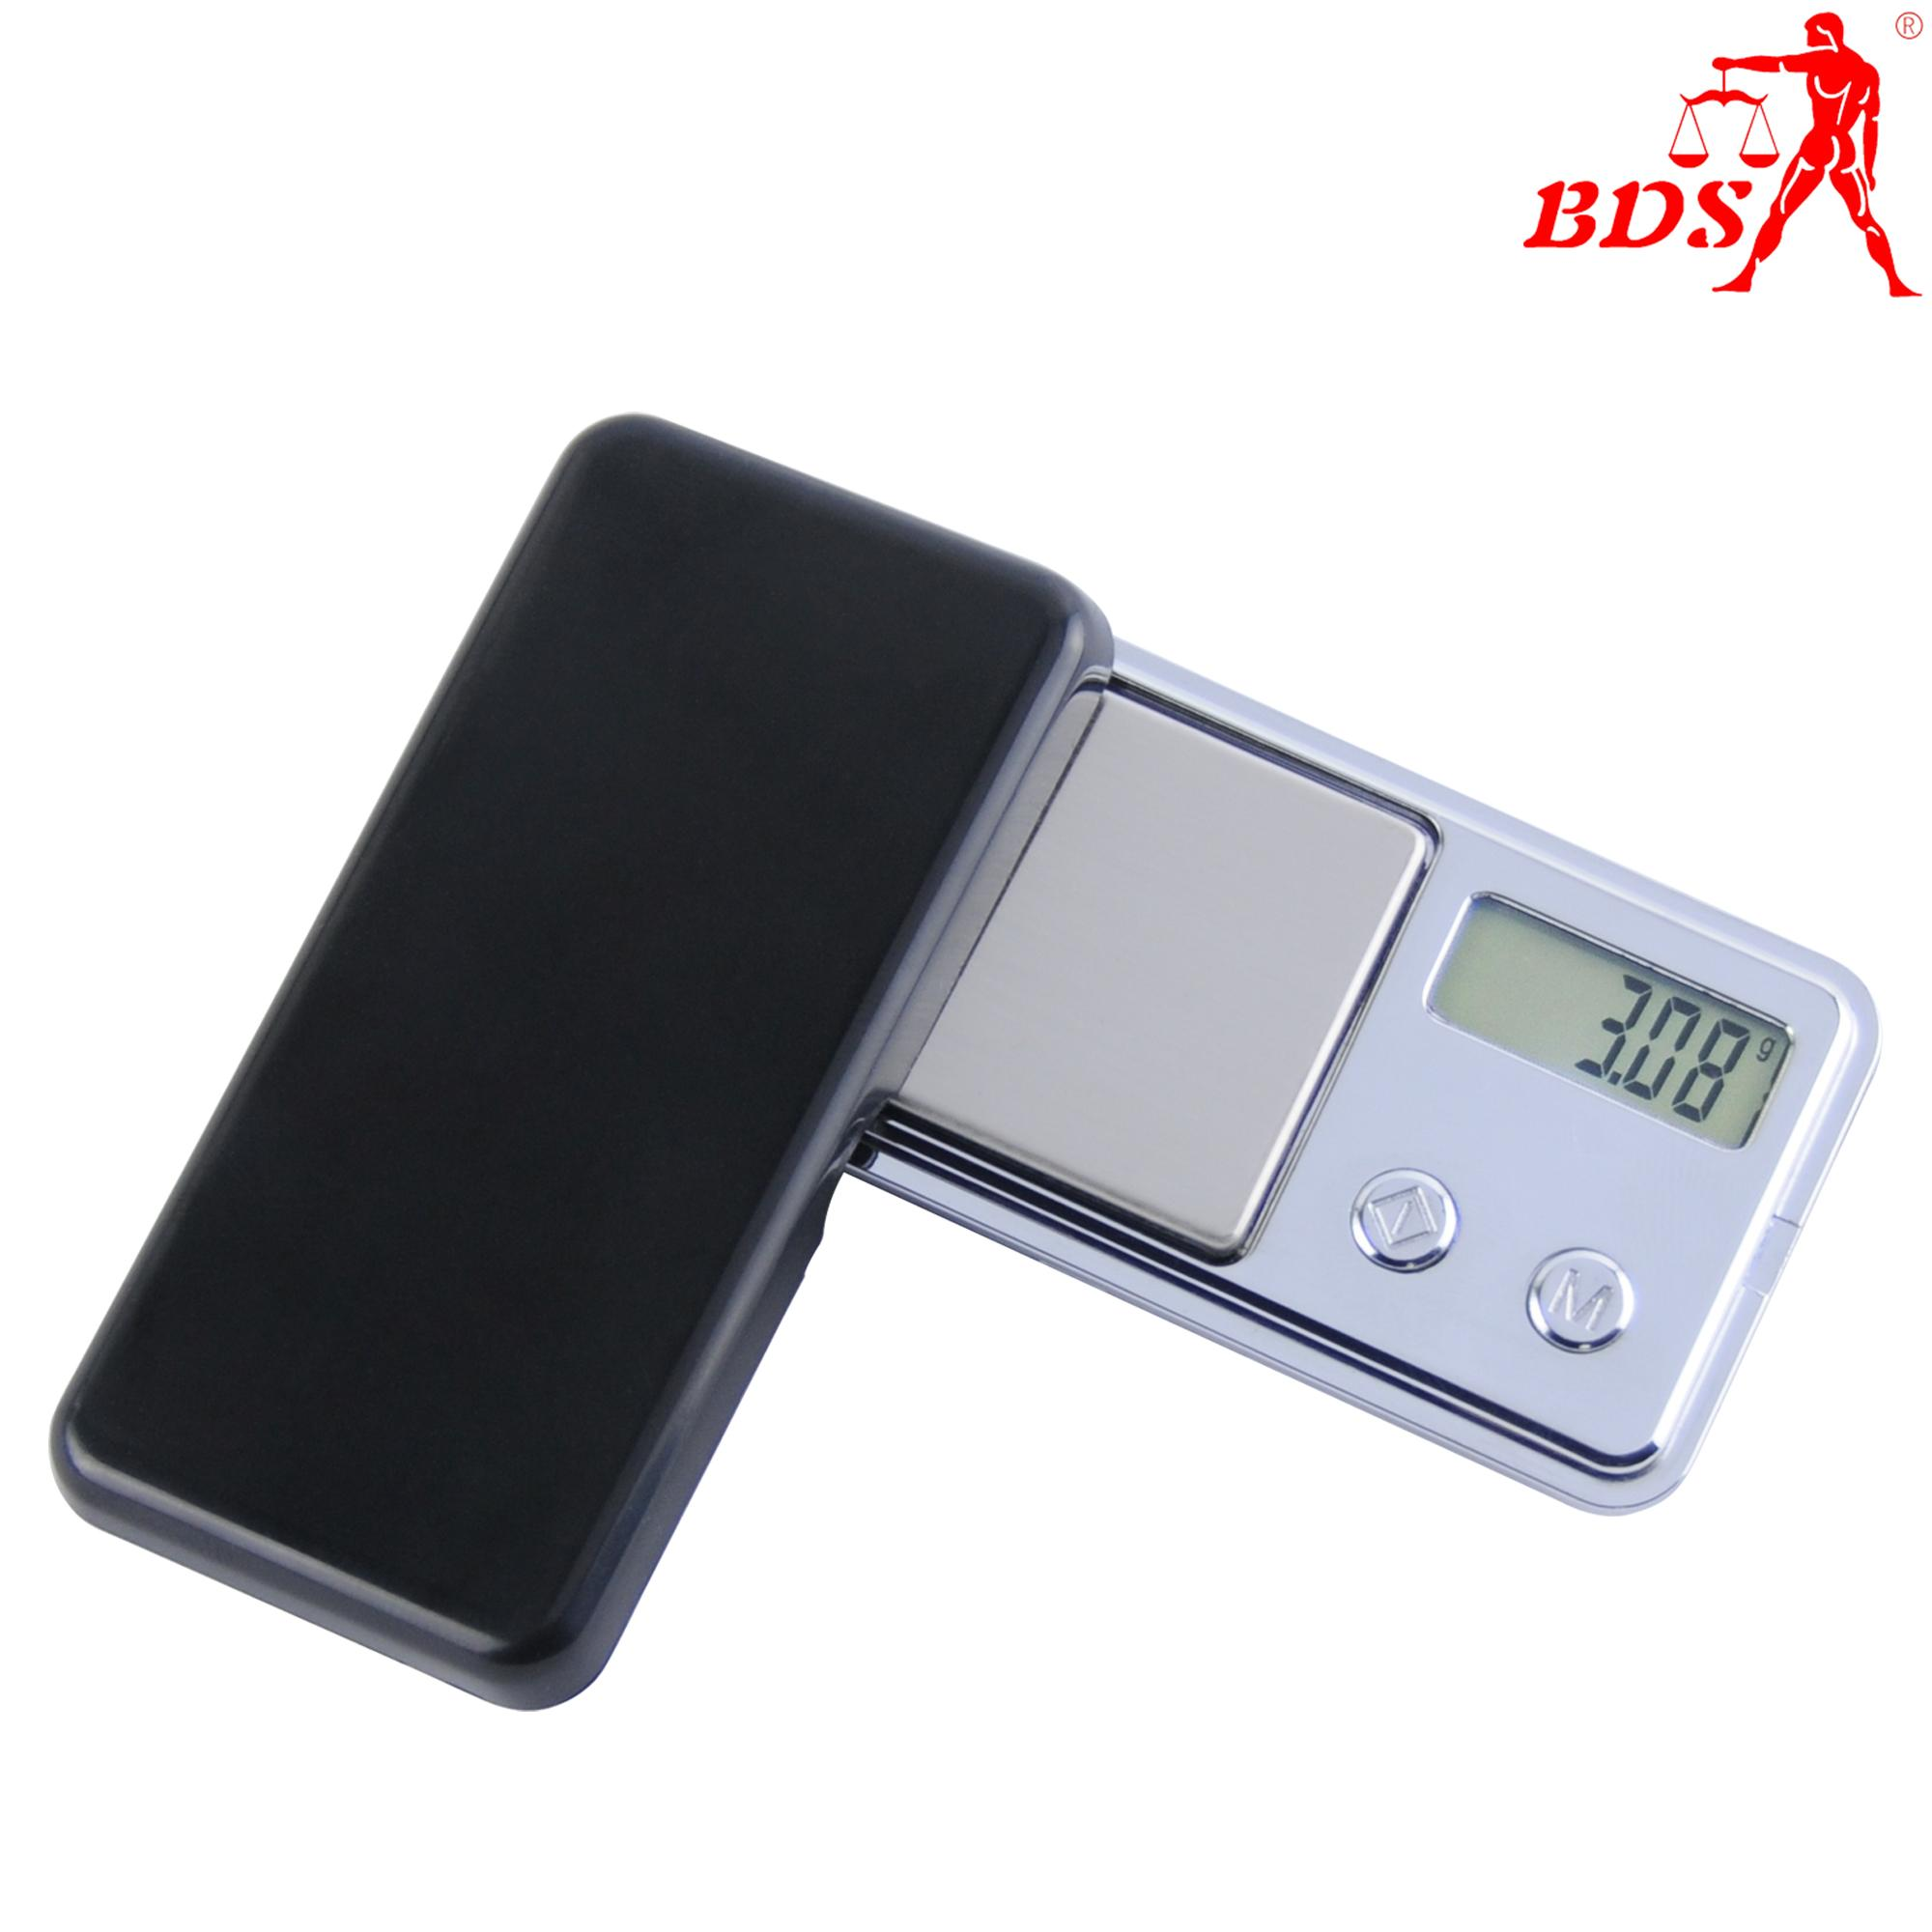 BDS-908 mini pocket jewelry scale plam scale smart scale 2